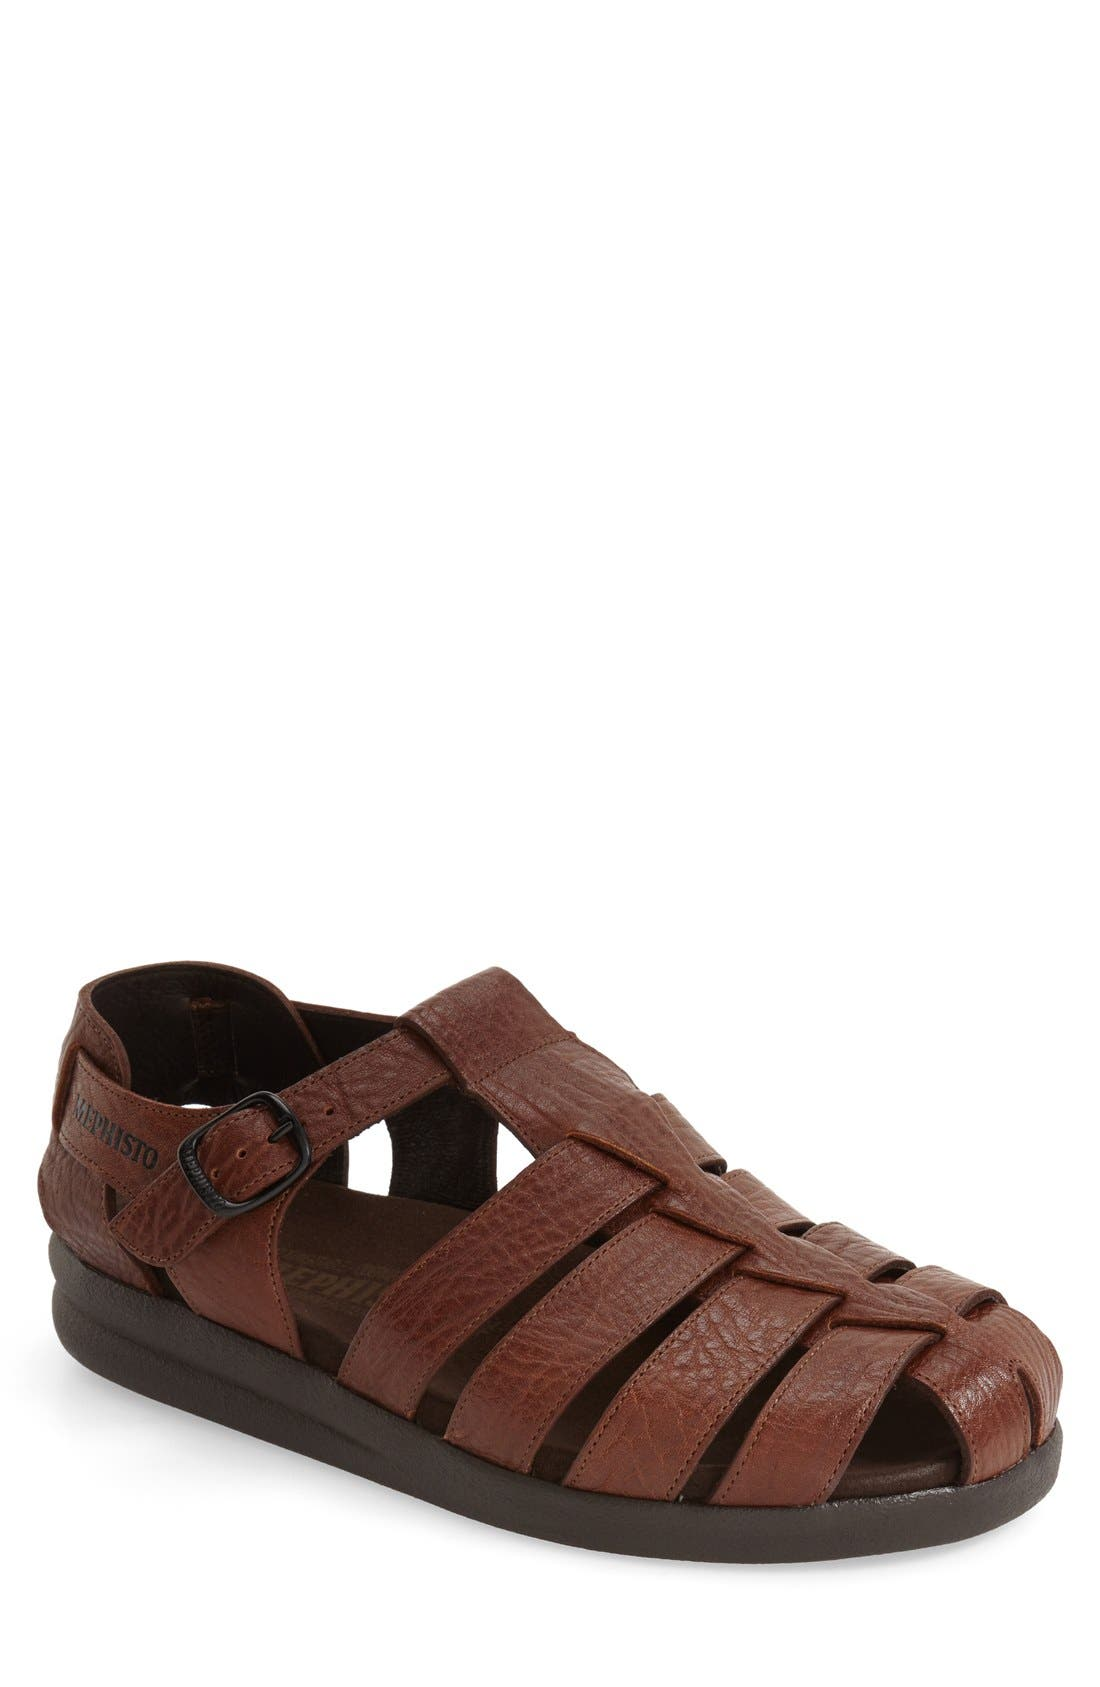 'Sam' Sandal,                         Main,                         color, TAN